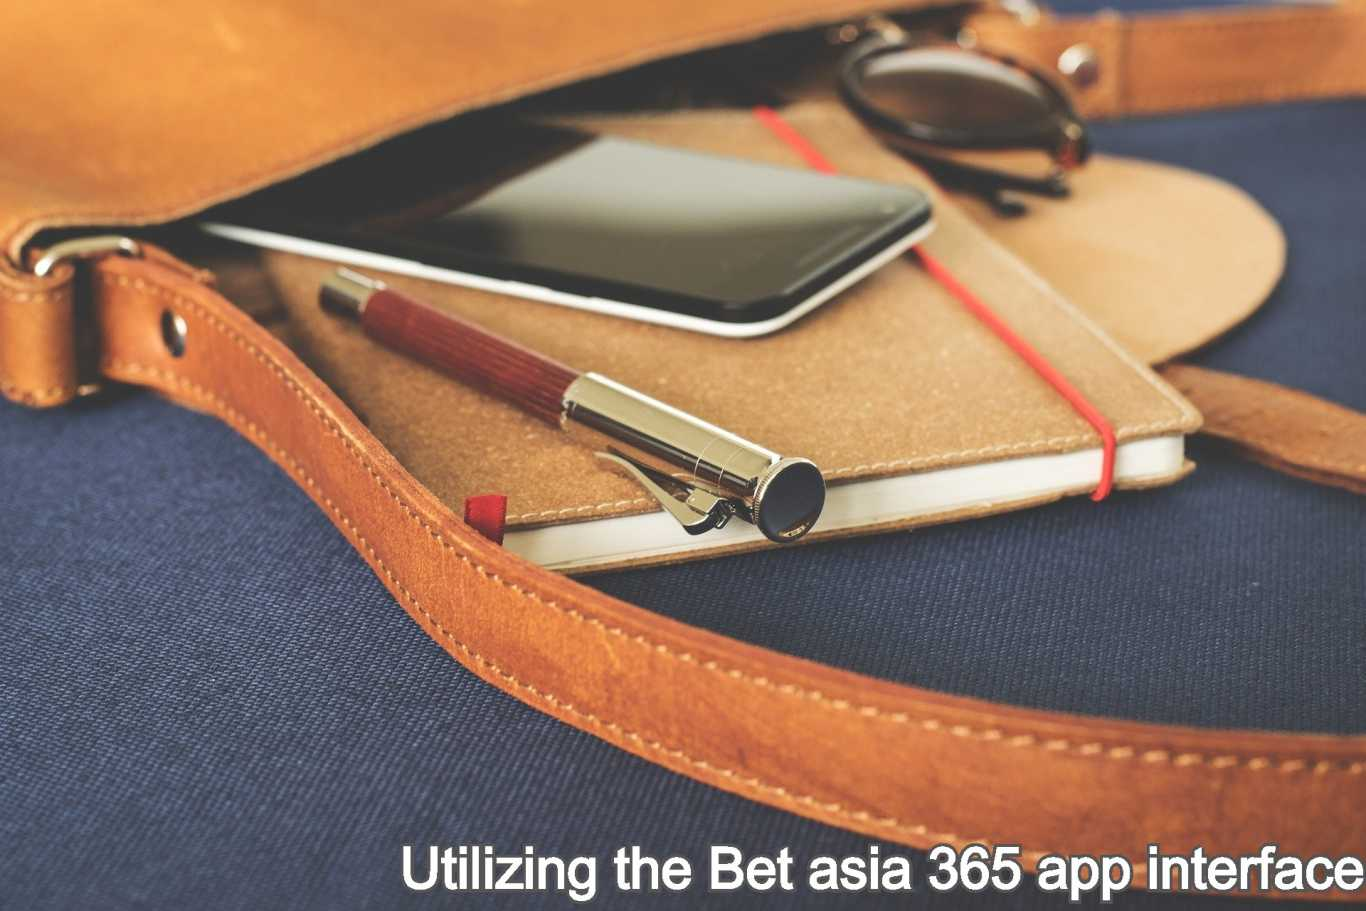 Utilizing the Bet asia 365 app interface